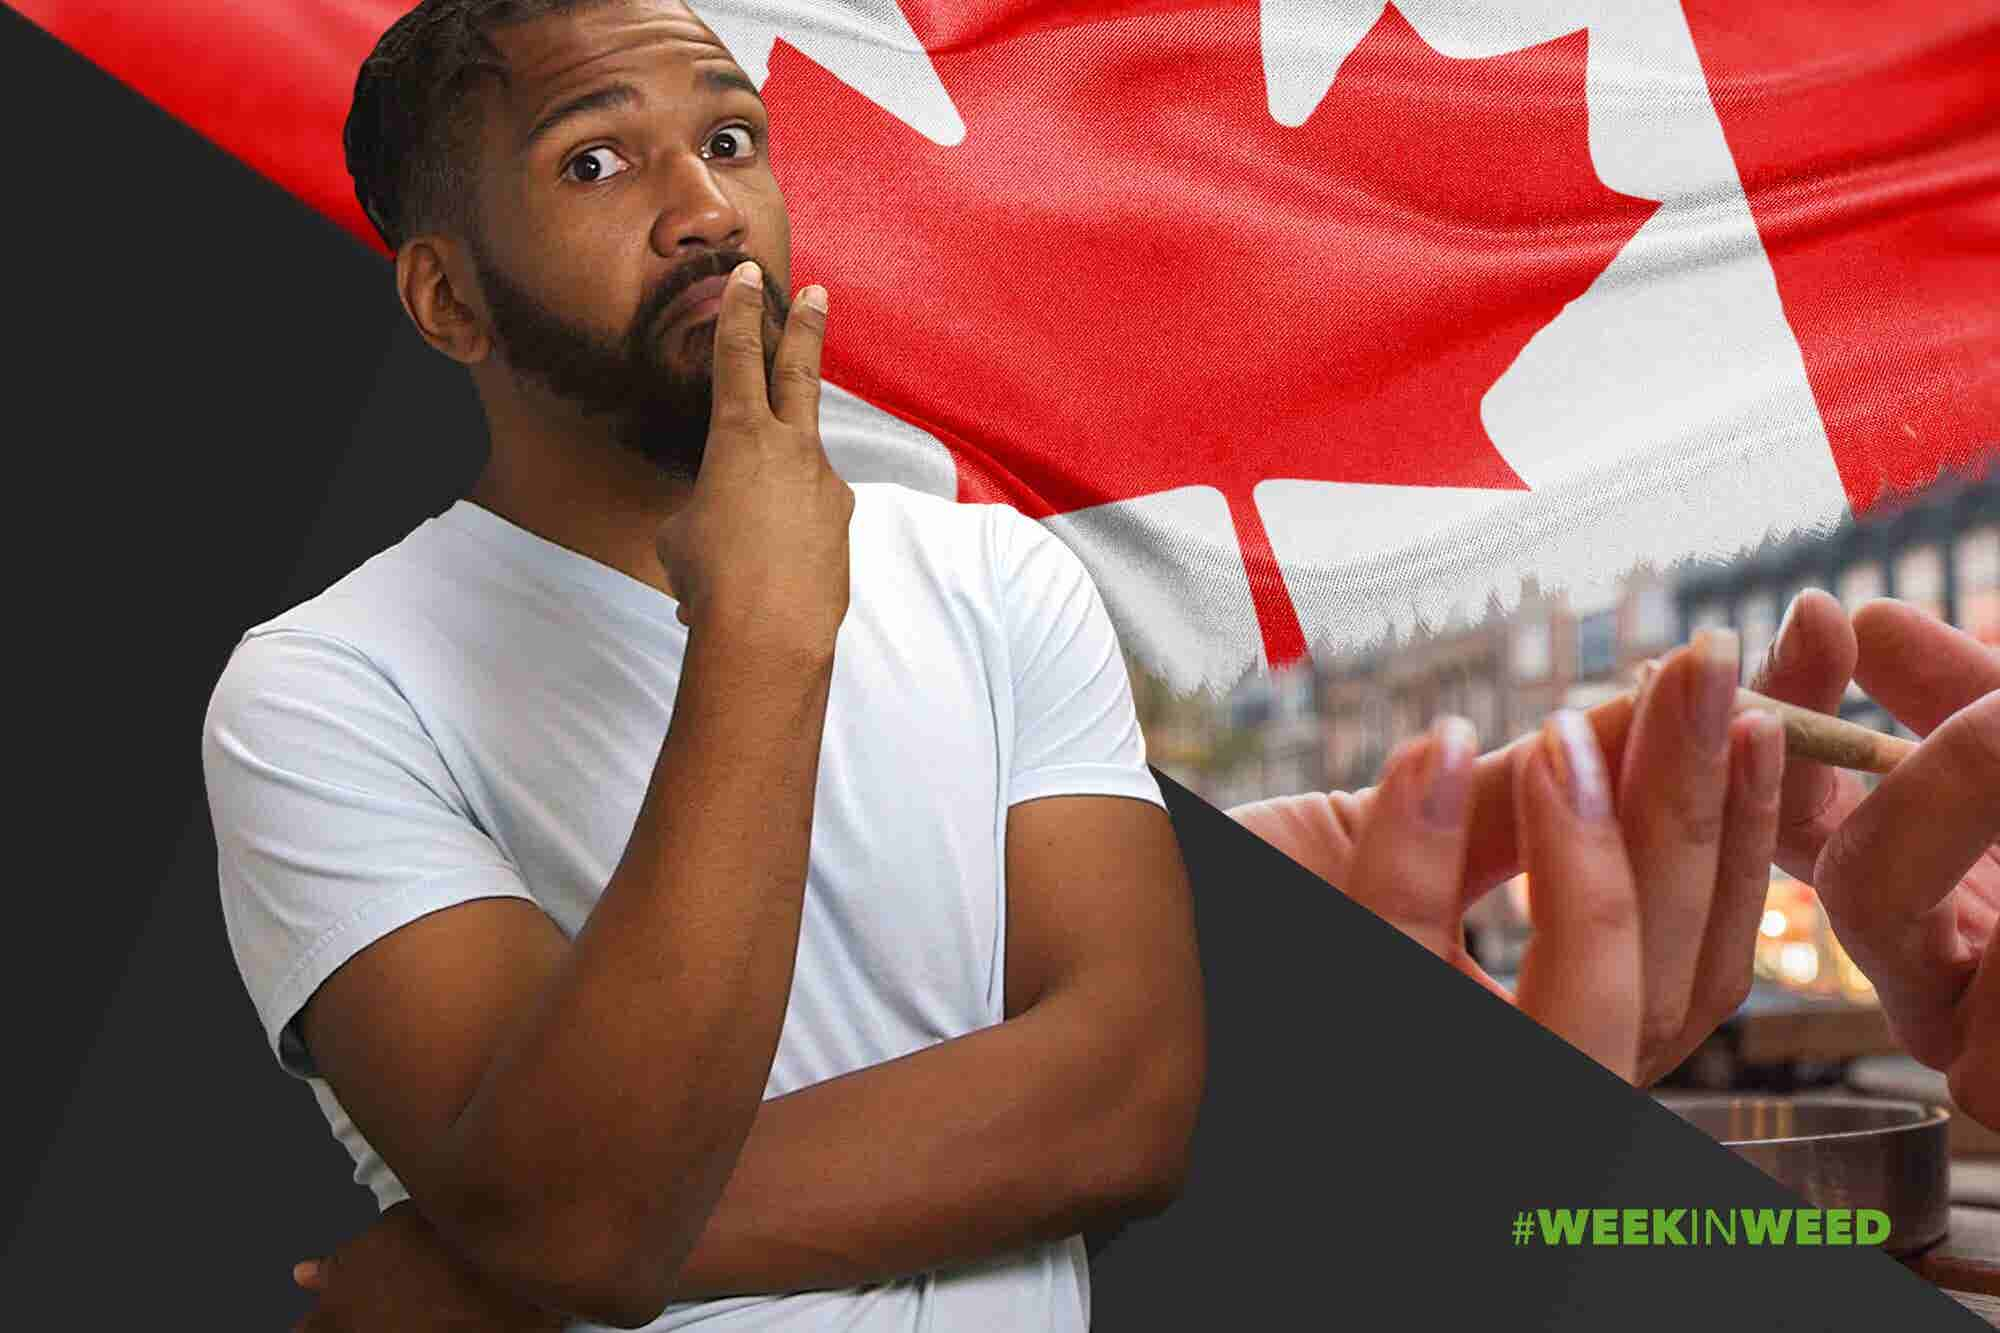 This Week in Weed: Canada 'Okays' Public Smoking!